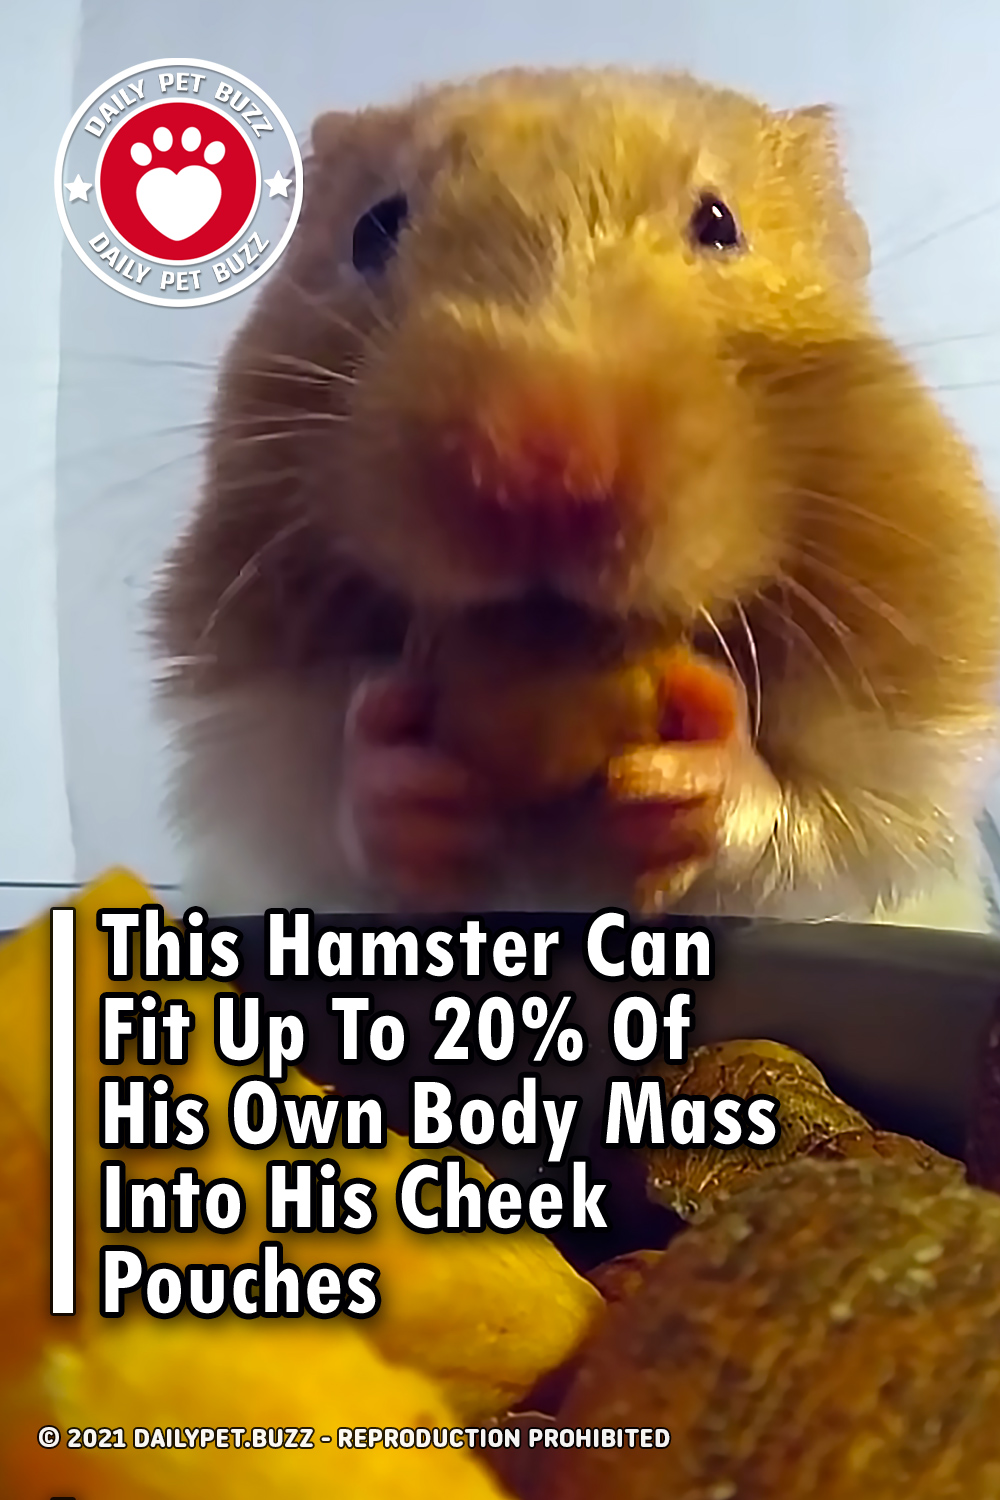 This Hamster Can Fit Up To 20% Of His Own Body Mass Into His Cheek Pouches